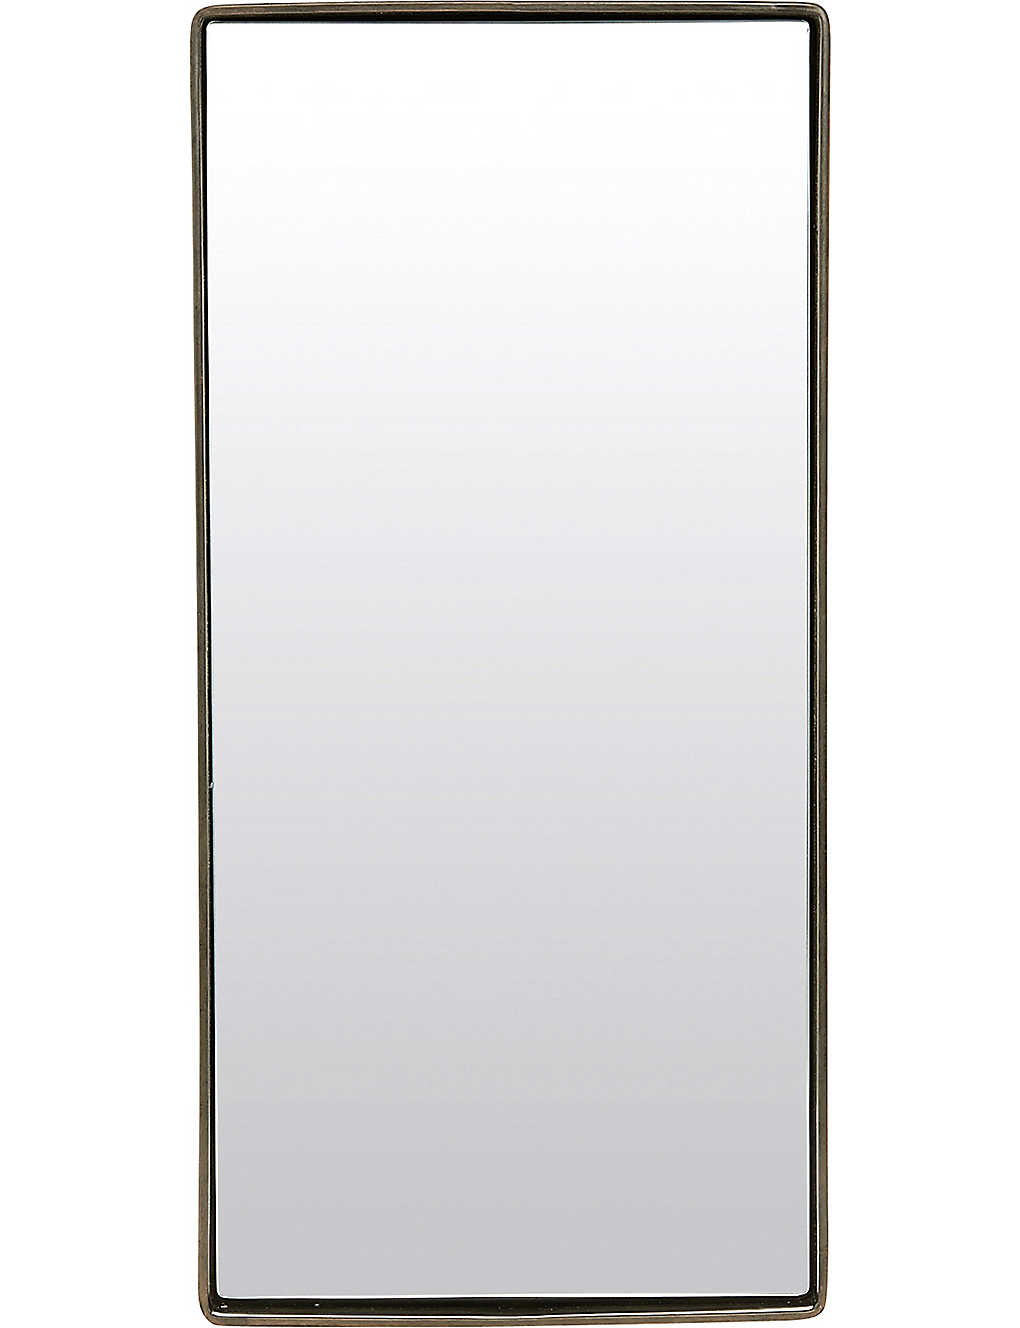 House doctor iron framed wall mirror 55x25cm selfridges no recent searches amipublicfo Images